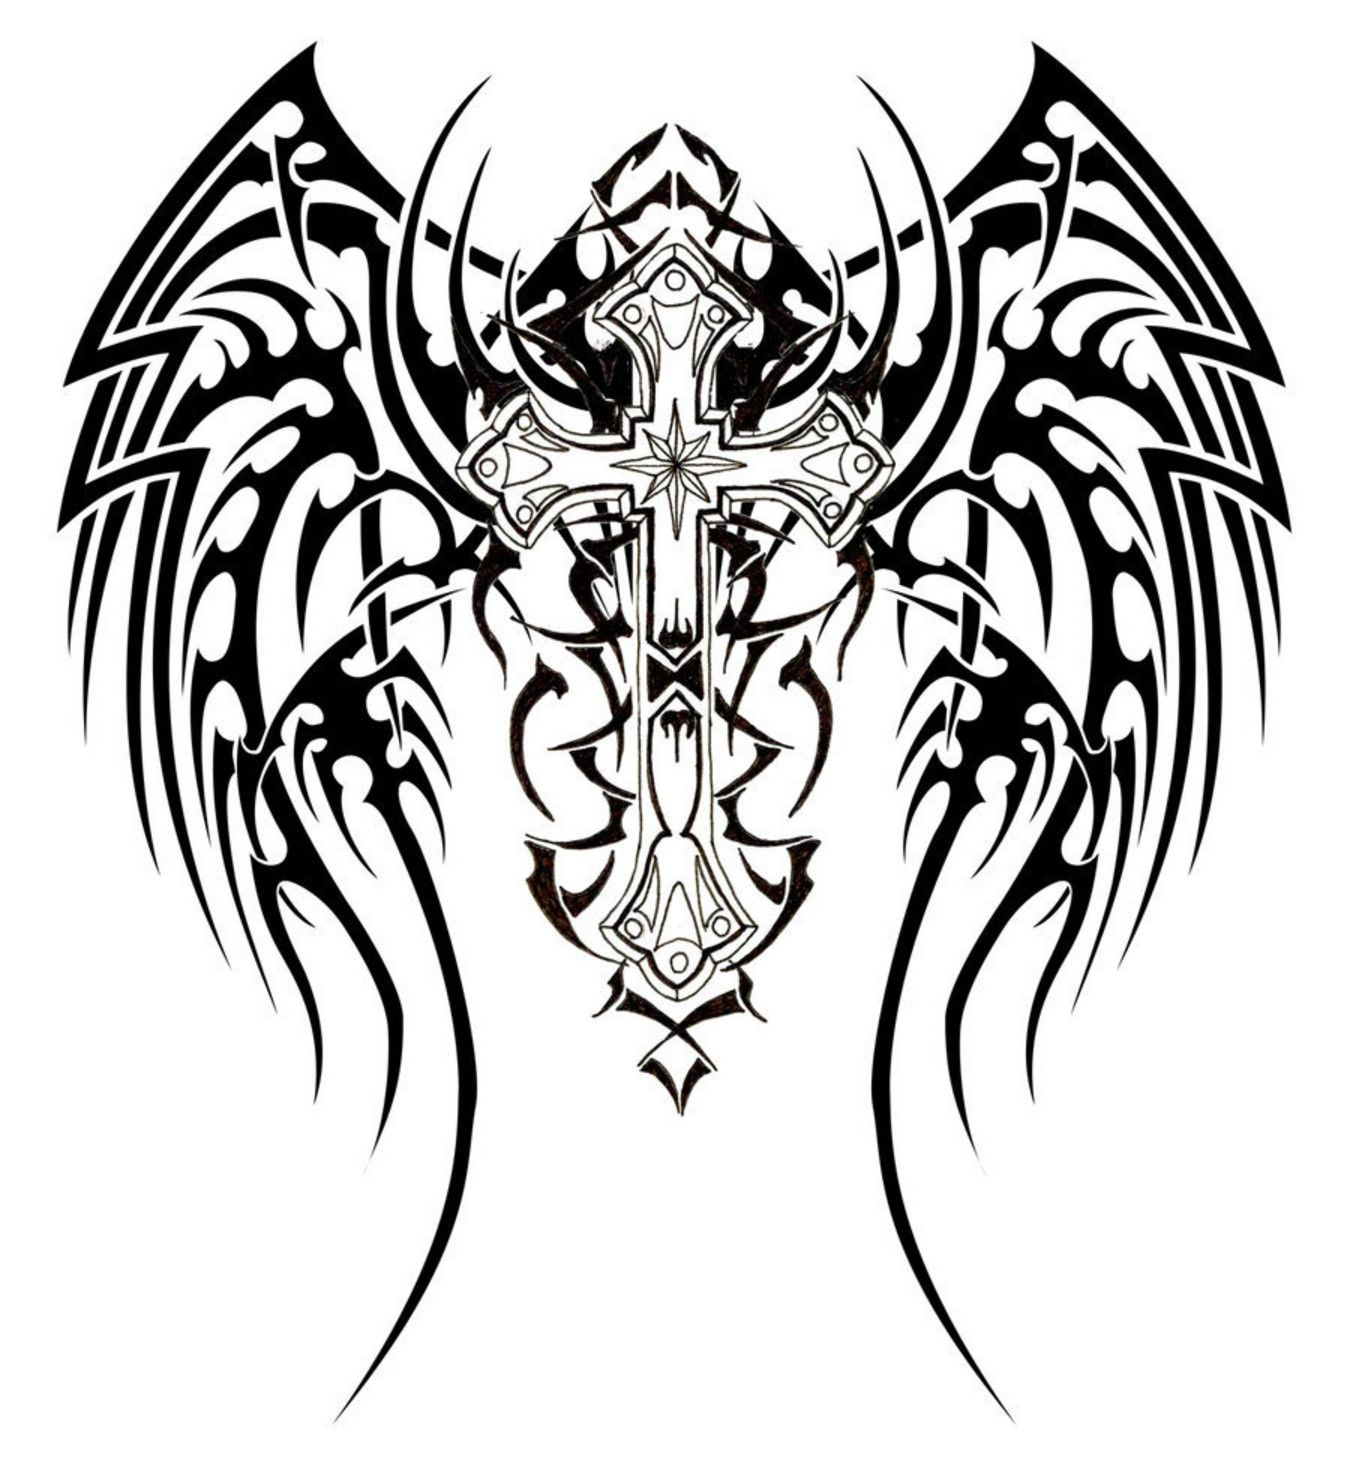 1350x1475 Harley Davidson Symbol Coloring Pages Tribal Cross Tattoos